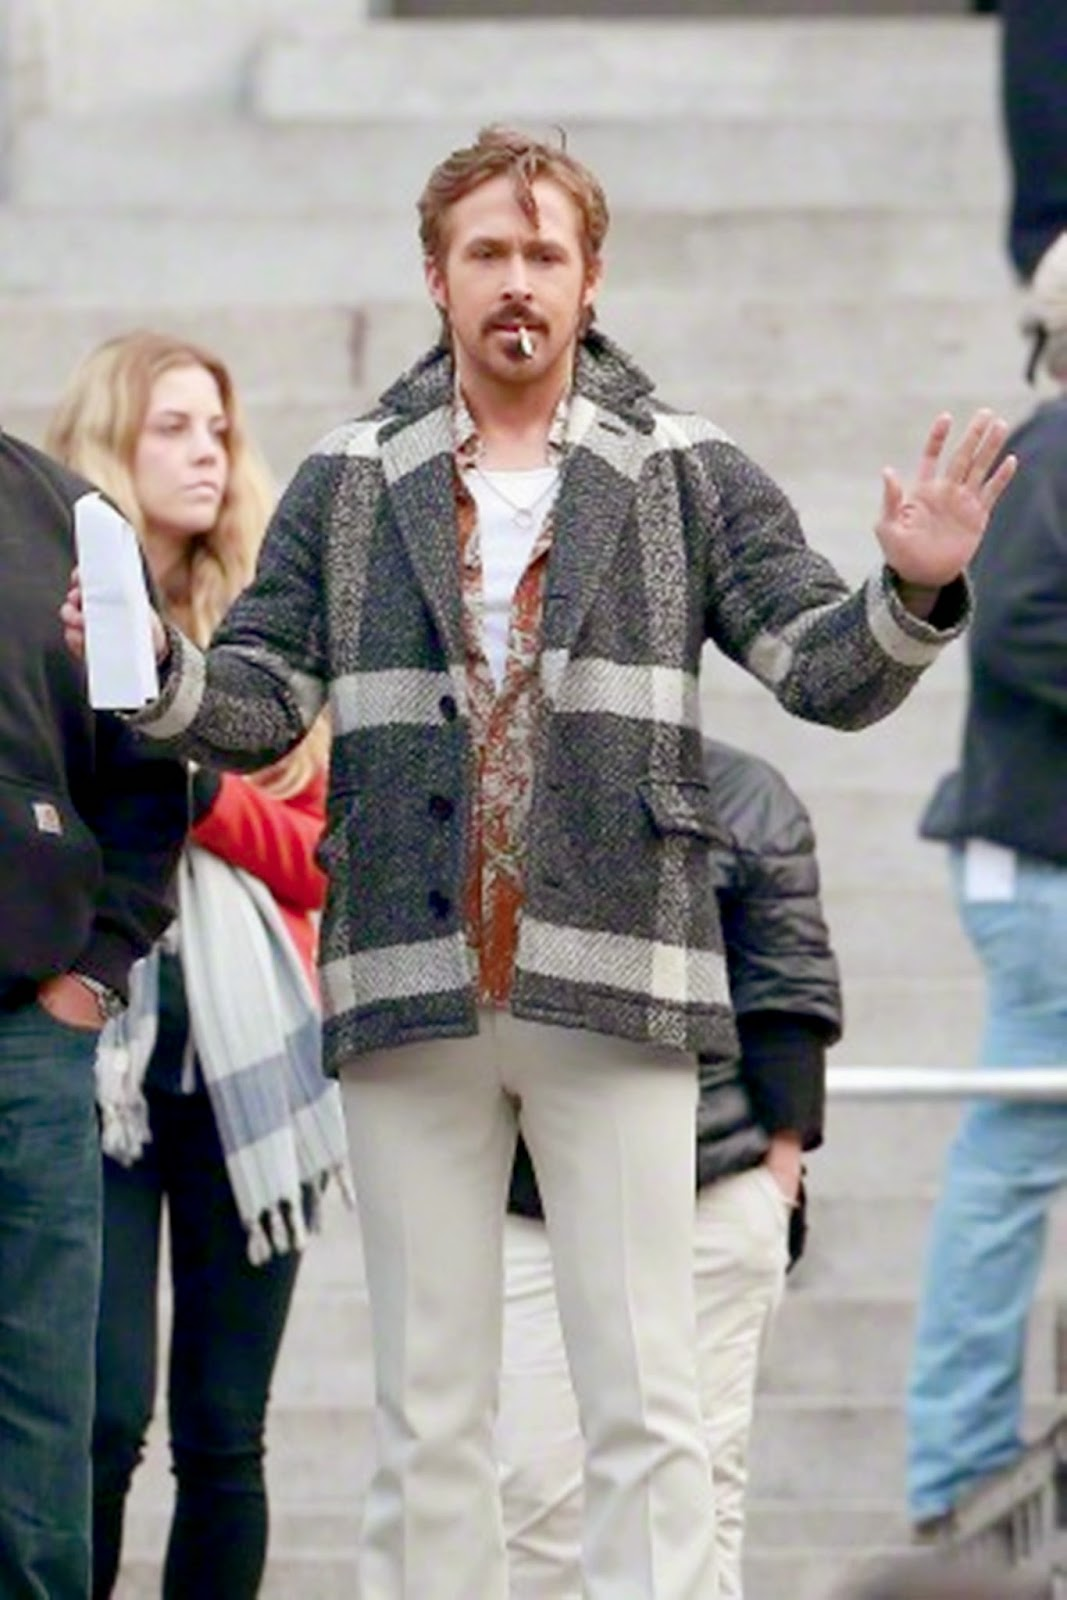 The Nice Guys - On Set 21 Jan. 2015 - See the photos